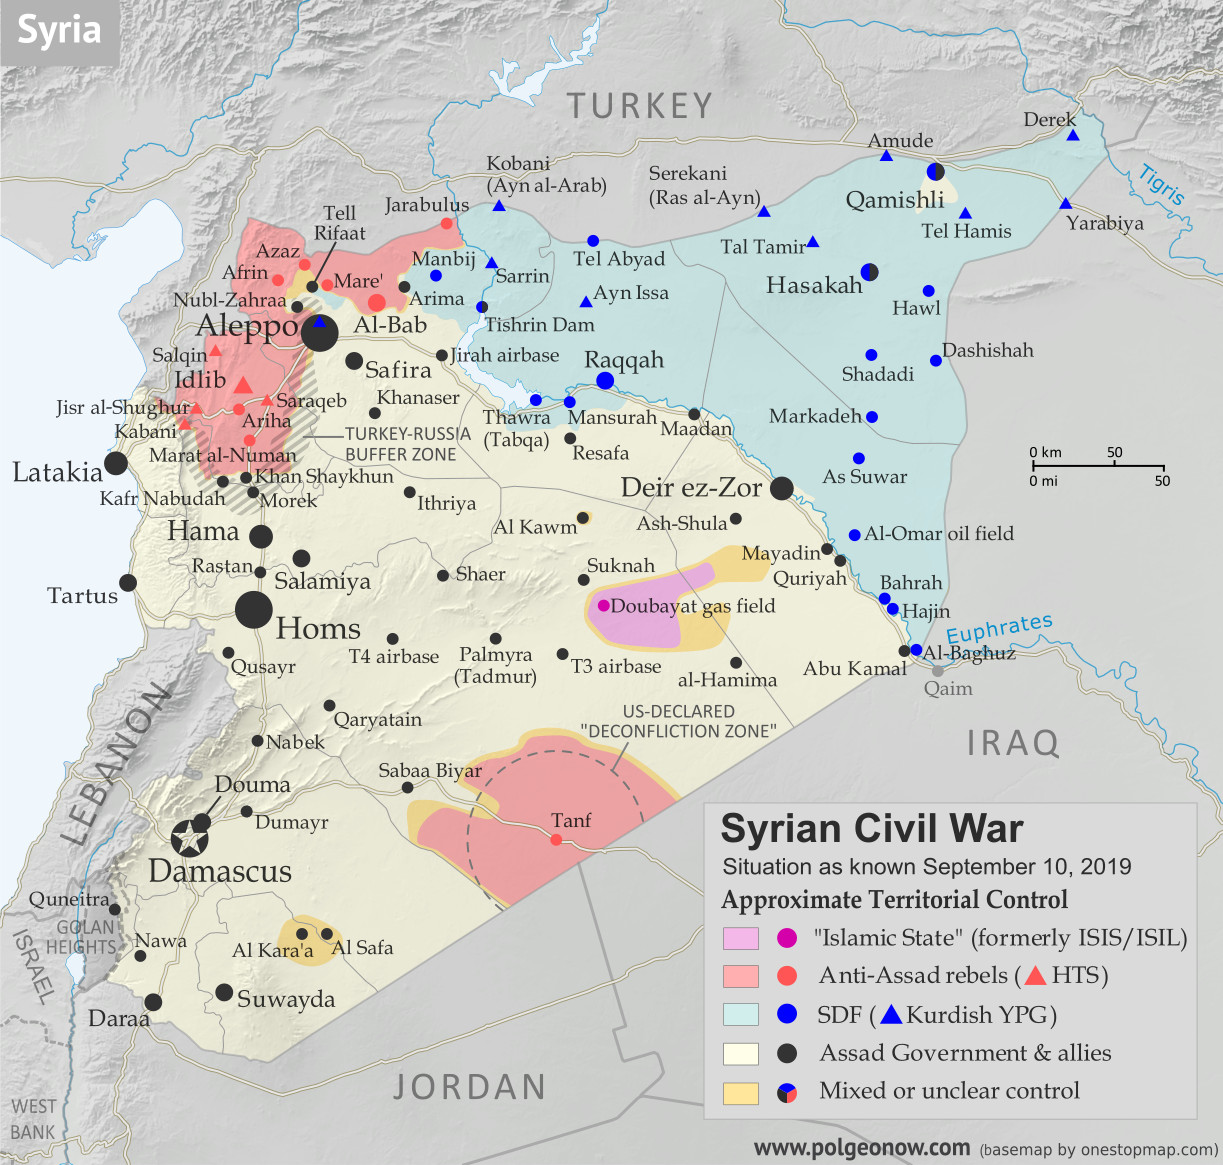 Map of Syrian Civil War (Syria control map): Territorial control in Syria in September 2019 (Free Syrian Army rebels, Kurdish YPG, Syrian Democratic Forces (SDF), Hayat Tahrir al-Sham (HTS / Al-Nusra Front), Islamic State (ISIS/ISIL), and others). Includes US deconfliction zone and Turkey-Russia demilitarized buffer zone, plus recent locations of conflict and territorial control changes, including Khan Shaykhun, Kabani, Morek, and more. Colorblind accessible.